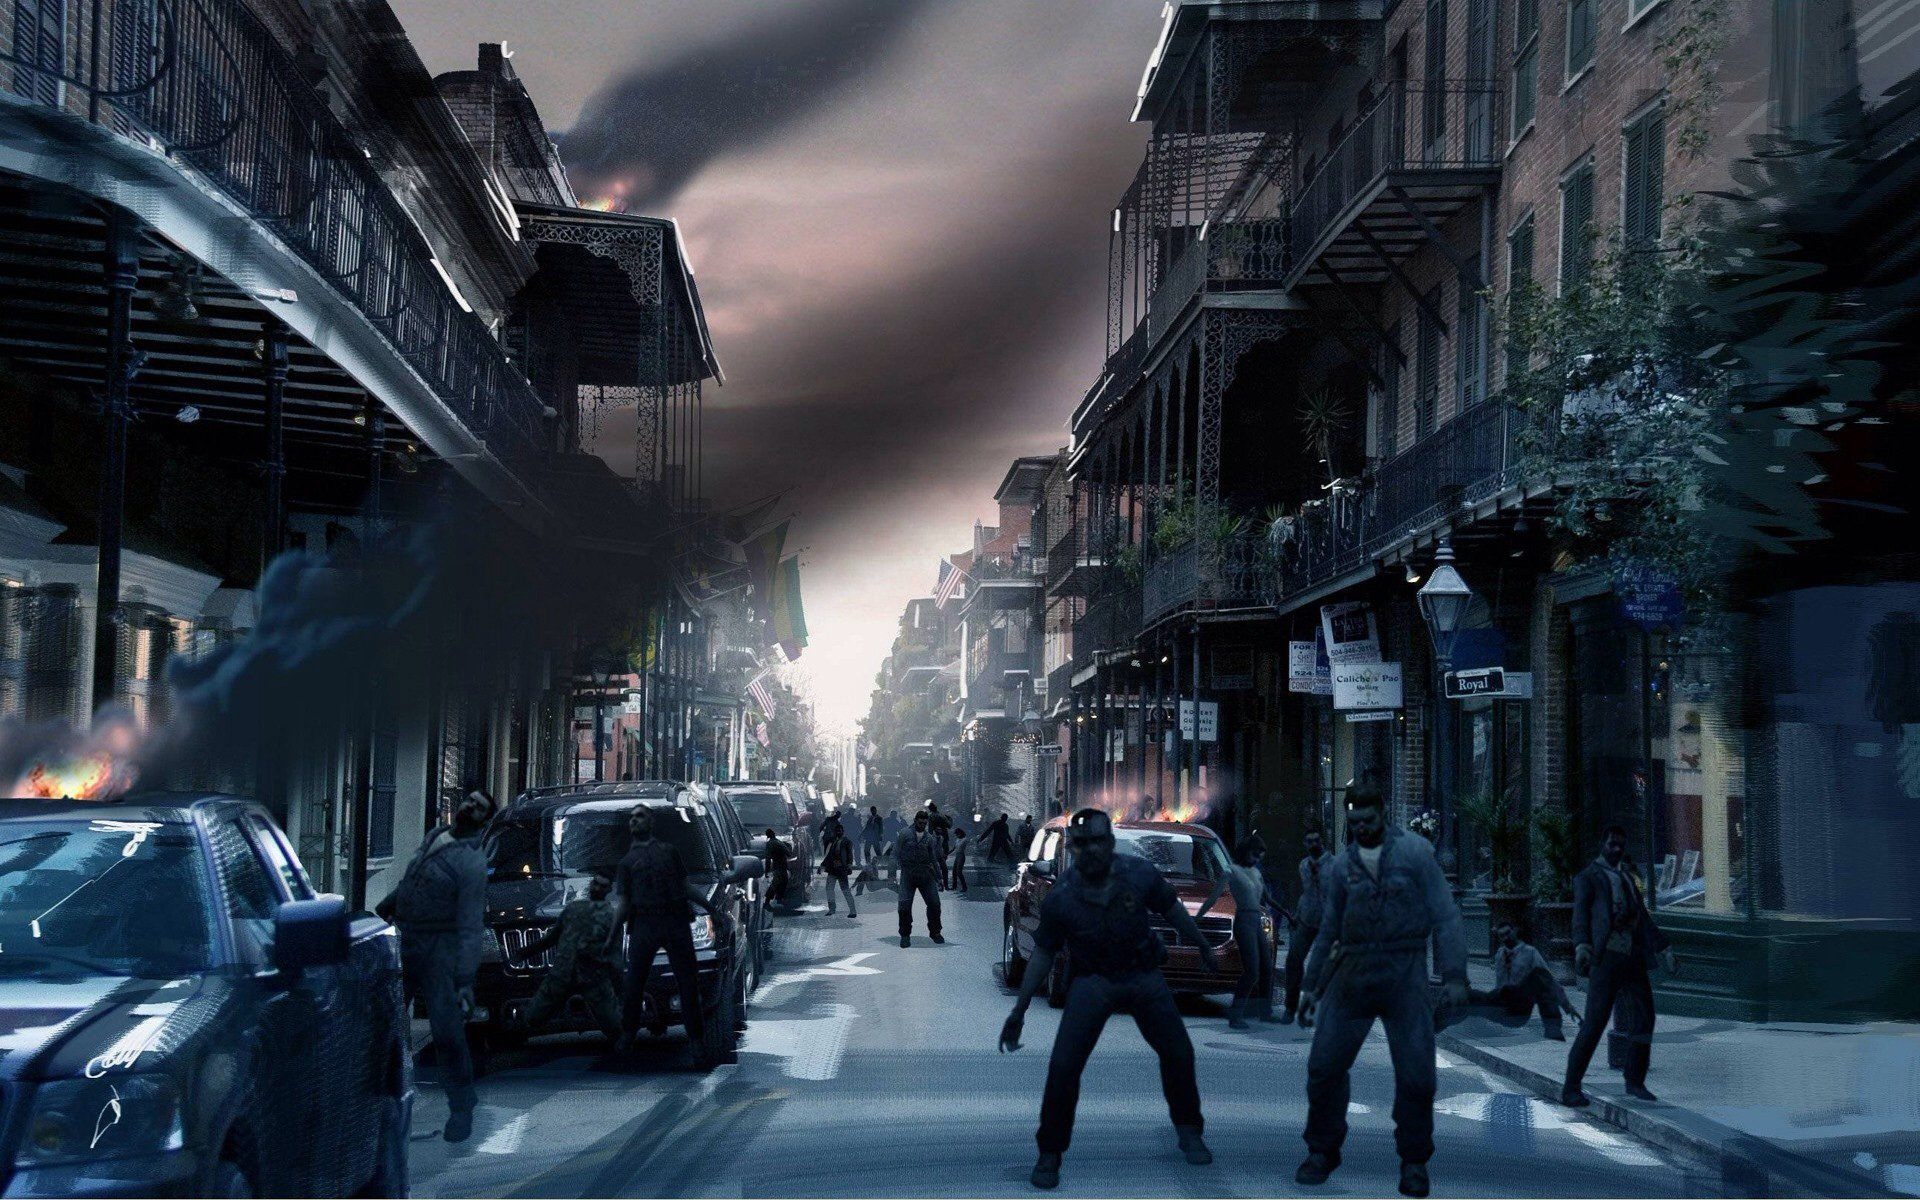 Apocalypse Background Hd 108 images in Collection Page 2 1920x1200